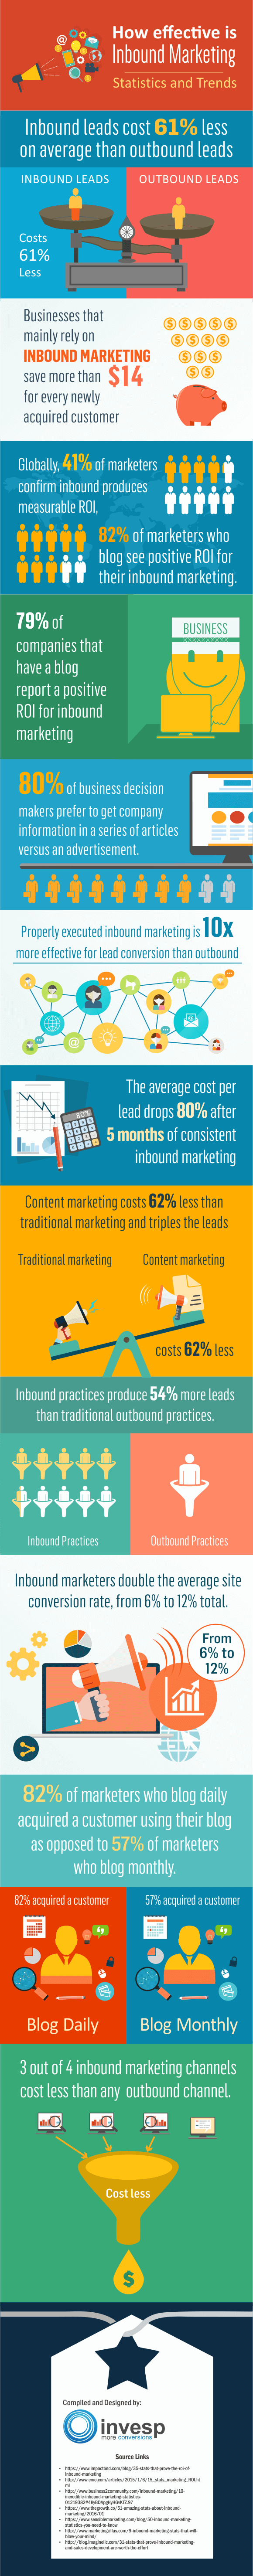 infografico-eficacia-do-inbound-marketing